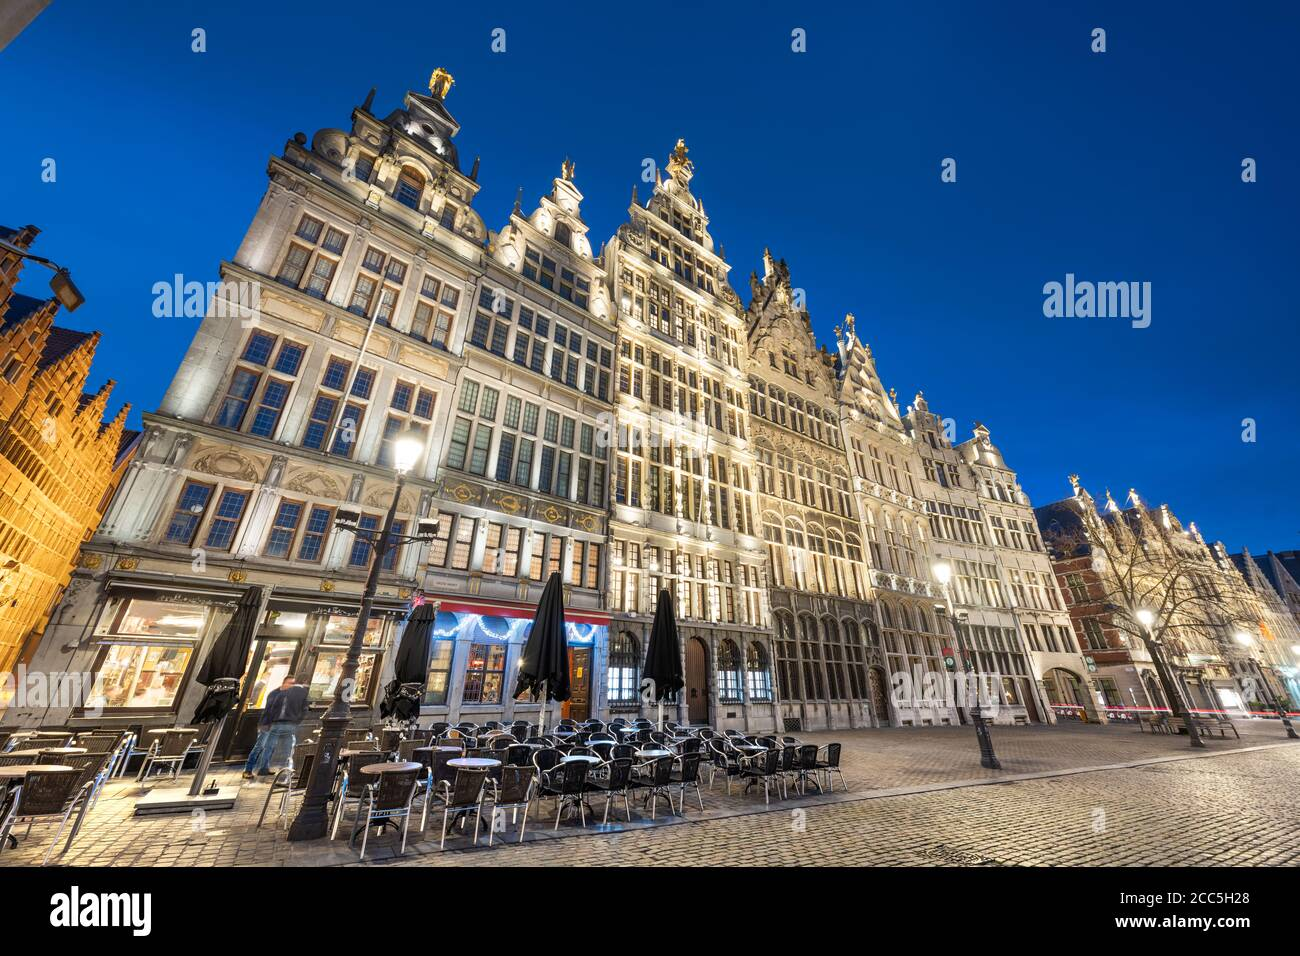 Grote Markt of Antwerp, Belgium at twilight. Stock Photo